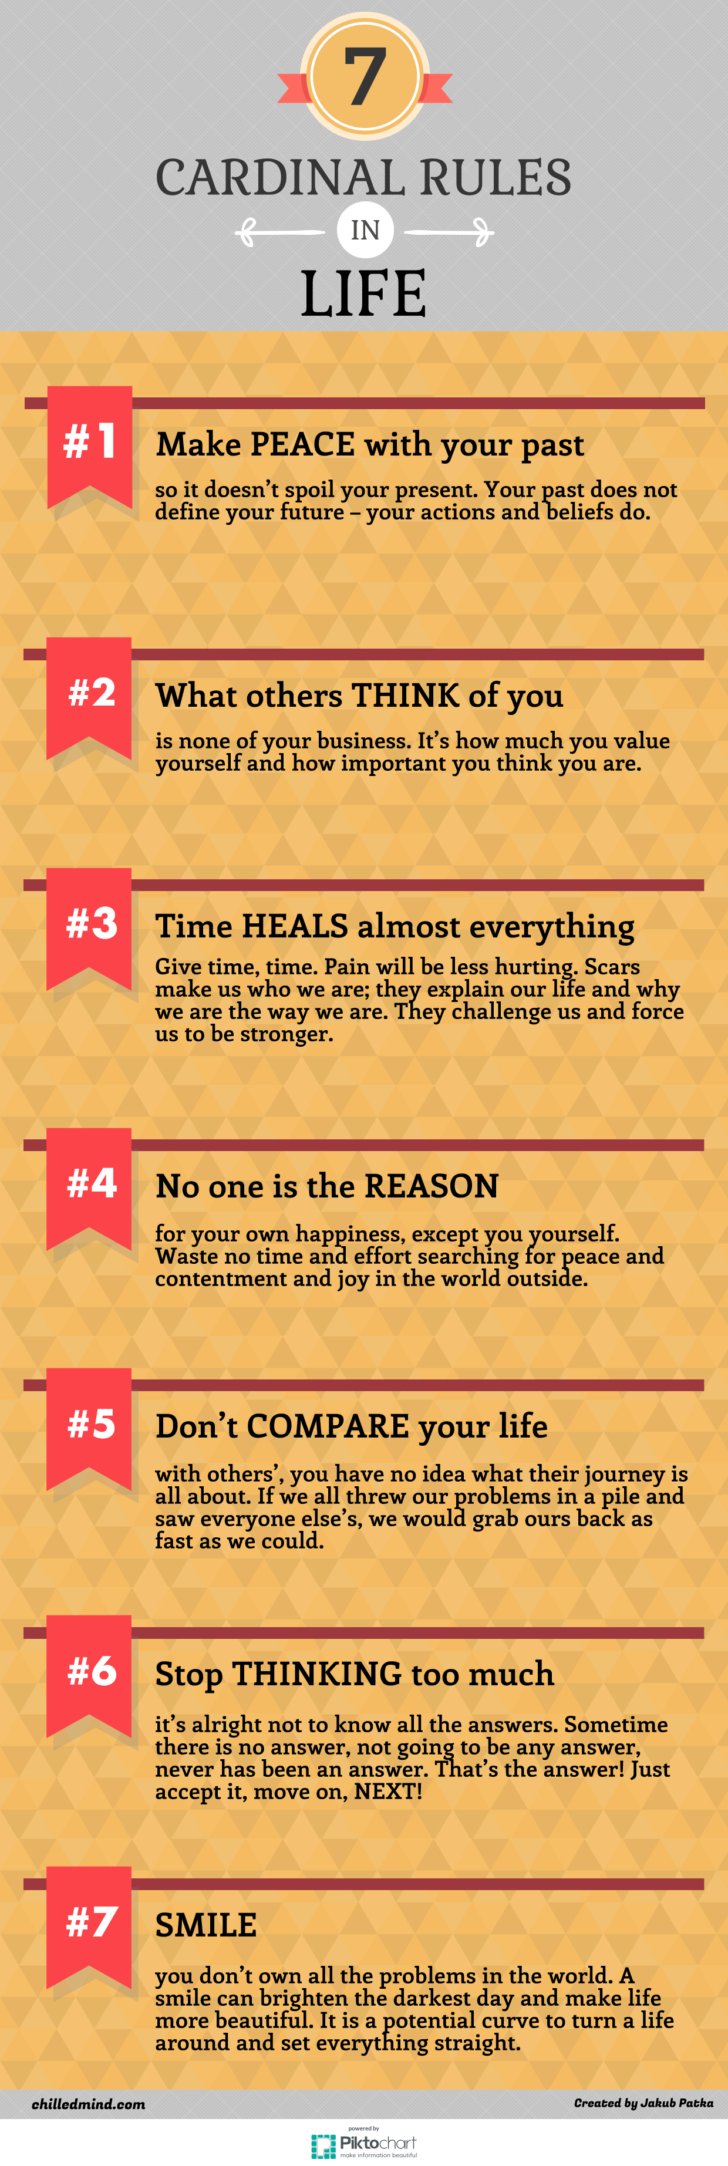 7-cardinal-rules-in-life